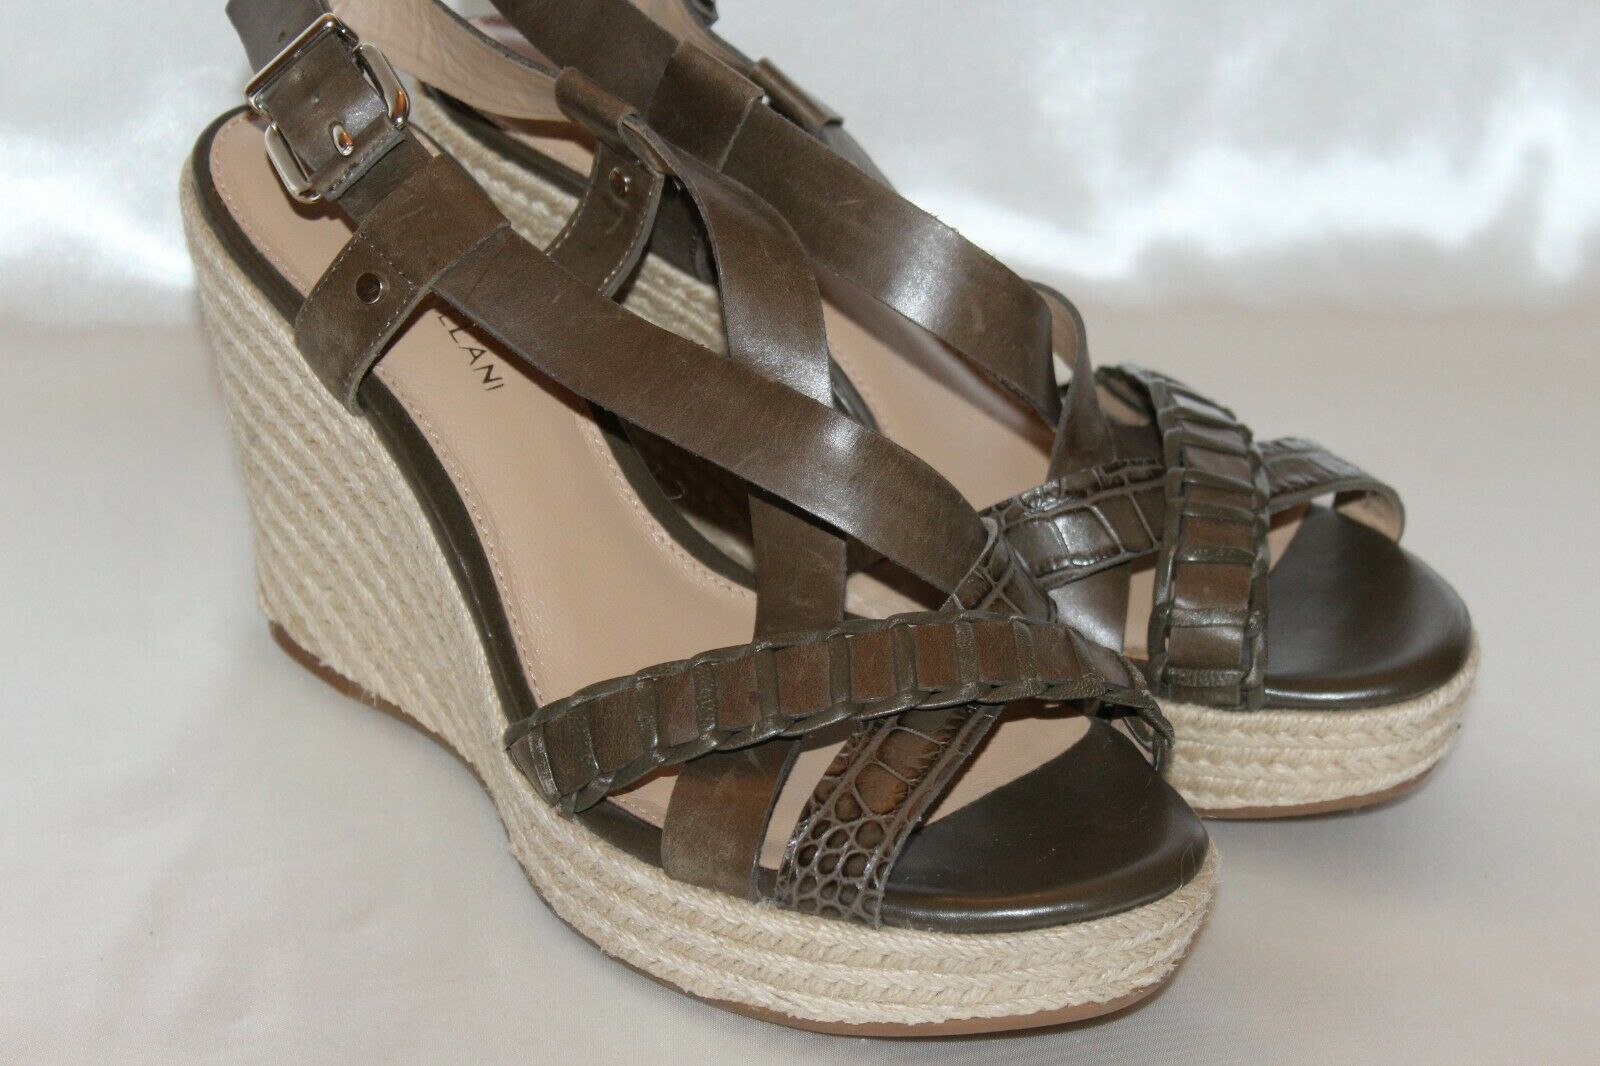 NEW  ANTONIO MELANI Olive Green Leather Open Toe Wedge Platform Sandal Sz 9.5